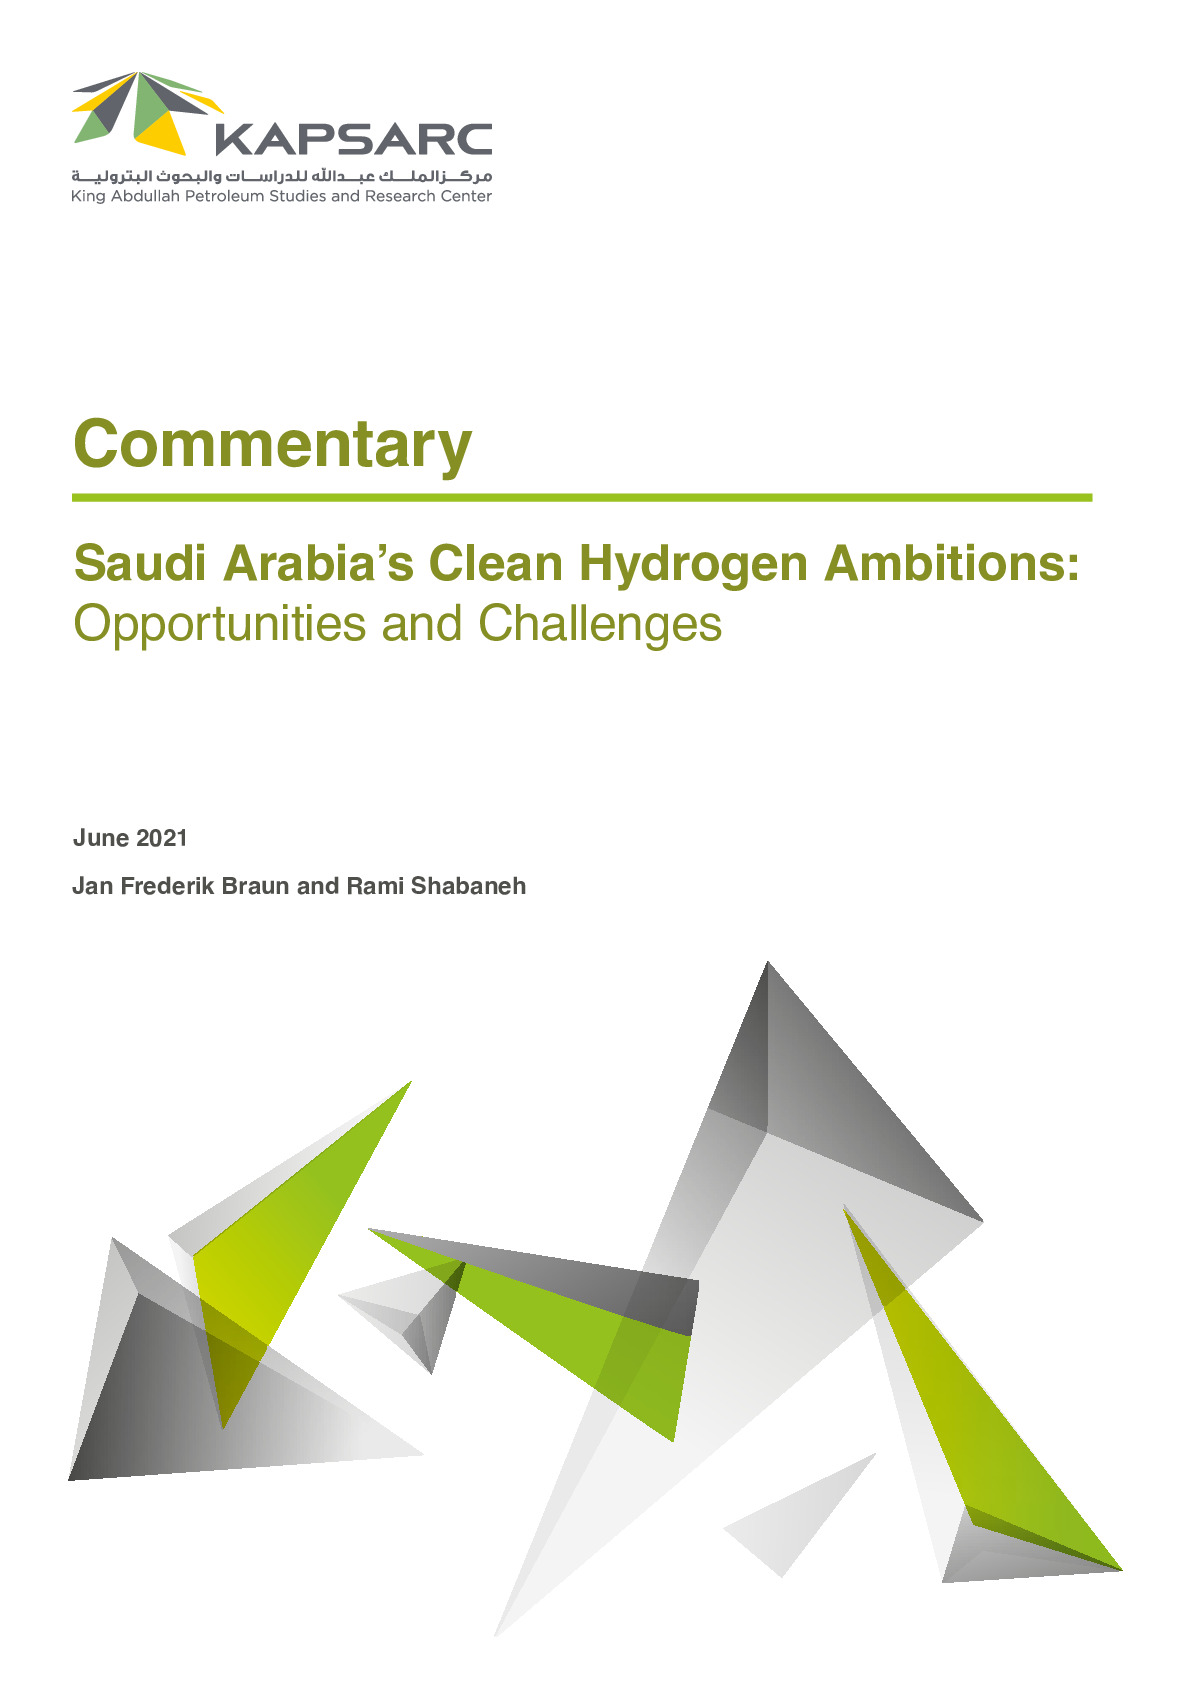 Saudi Arabia's Clean Hydrogen Ambitions: Opportunities and Challenges